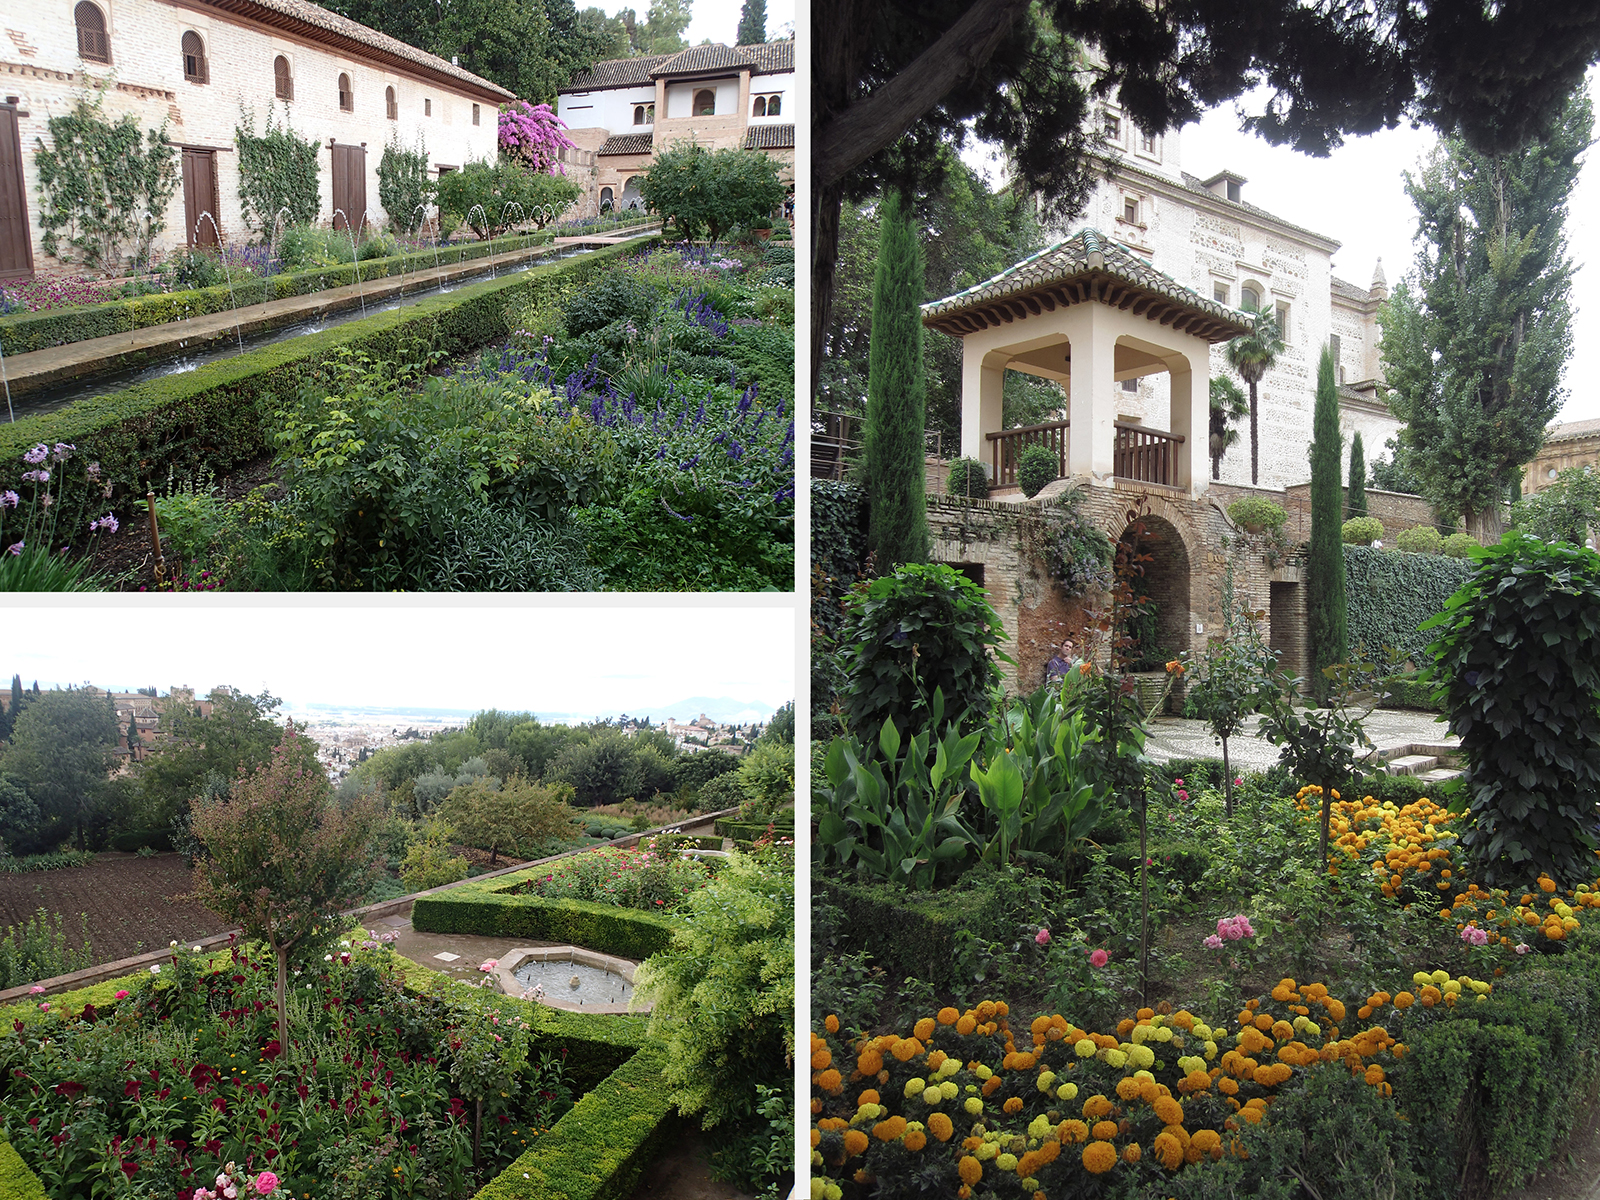 The Gardens of the Generalife   photo: Melanie Reed-felstead left and Antonia right